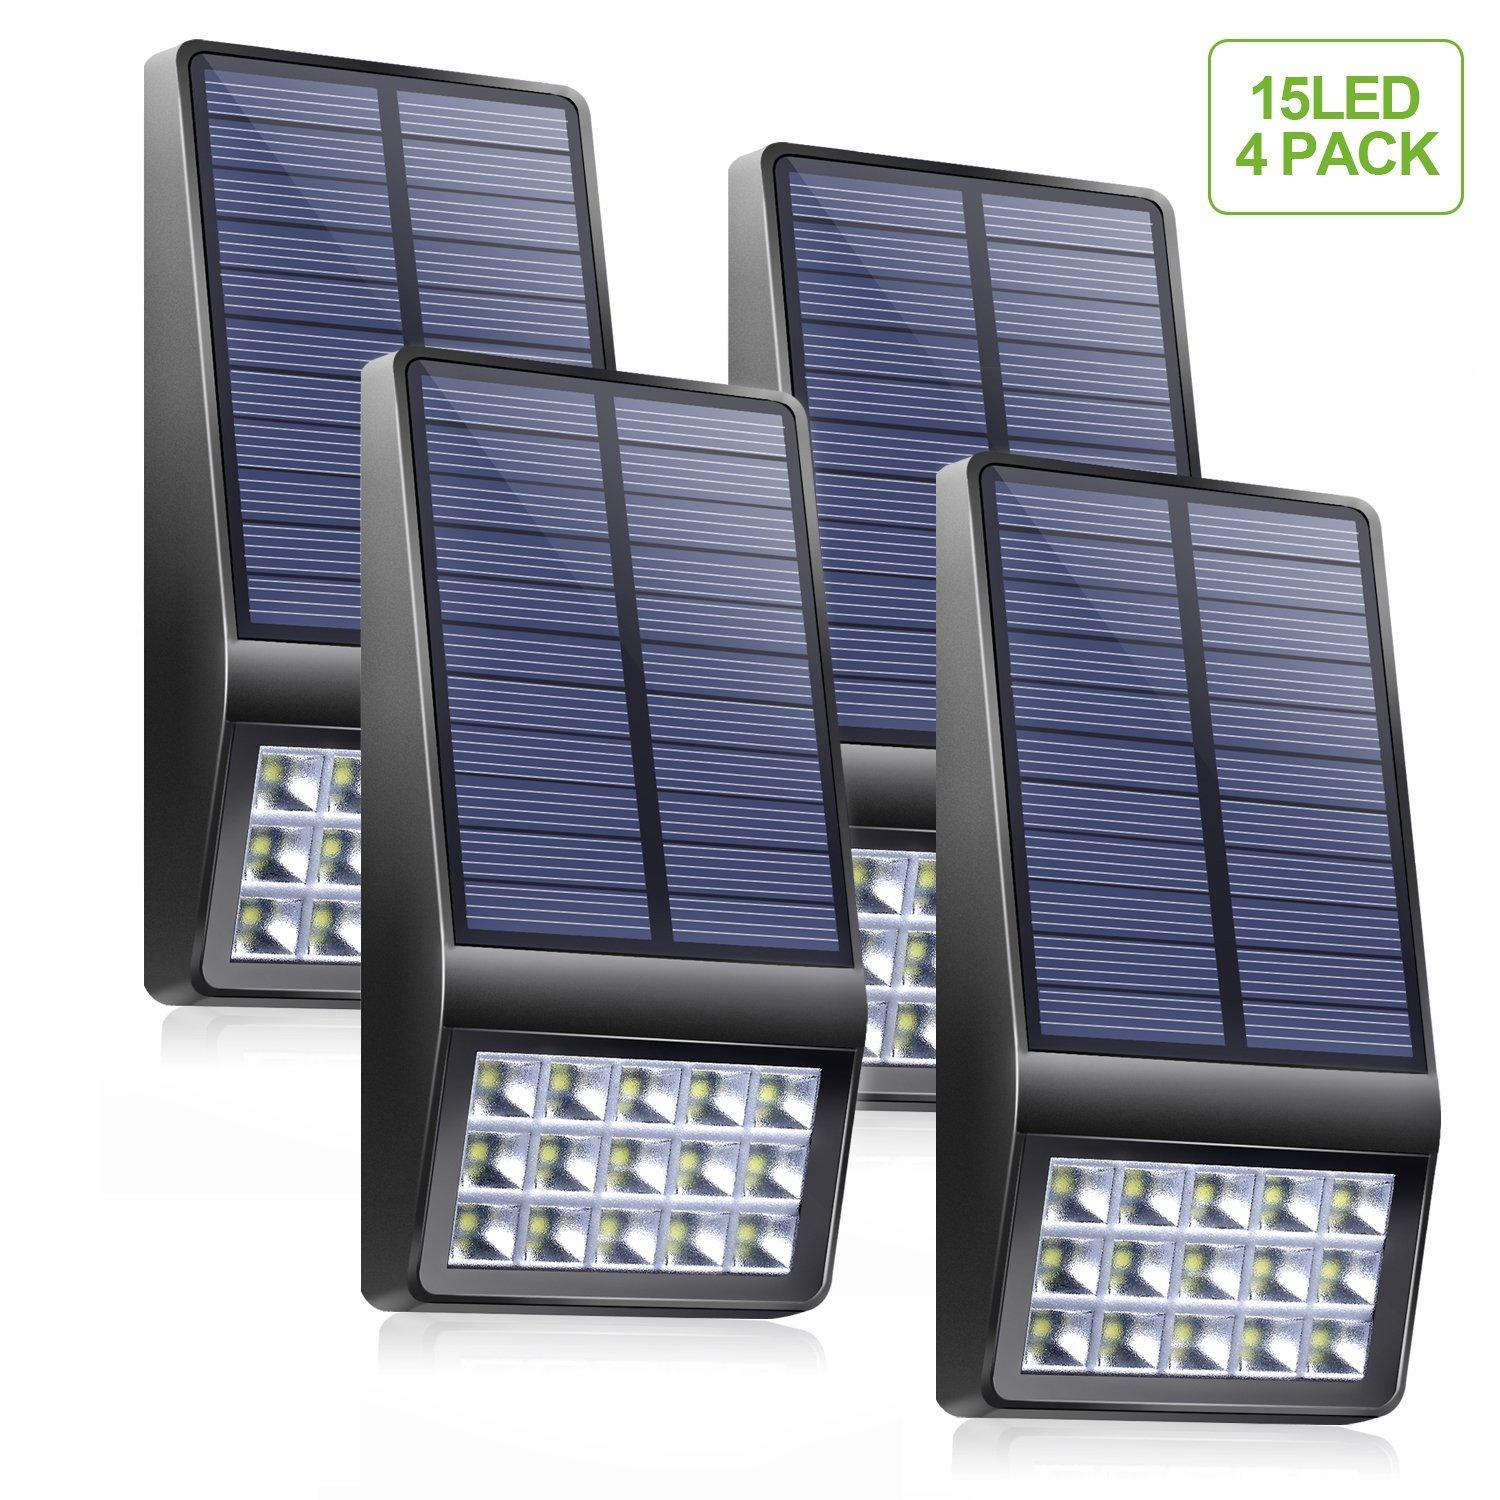 Solar Philippines: Solar price list - LED Light Set for sale | Lazada